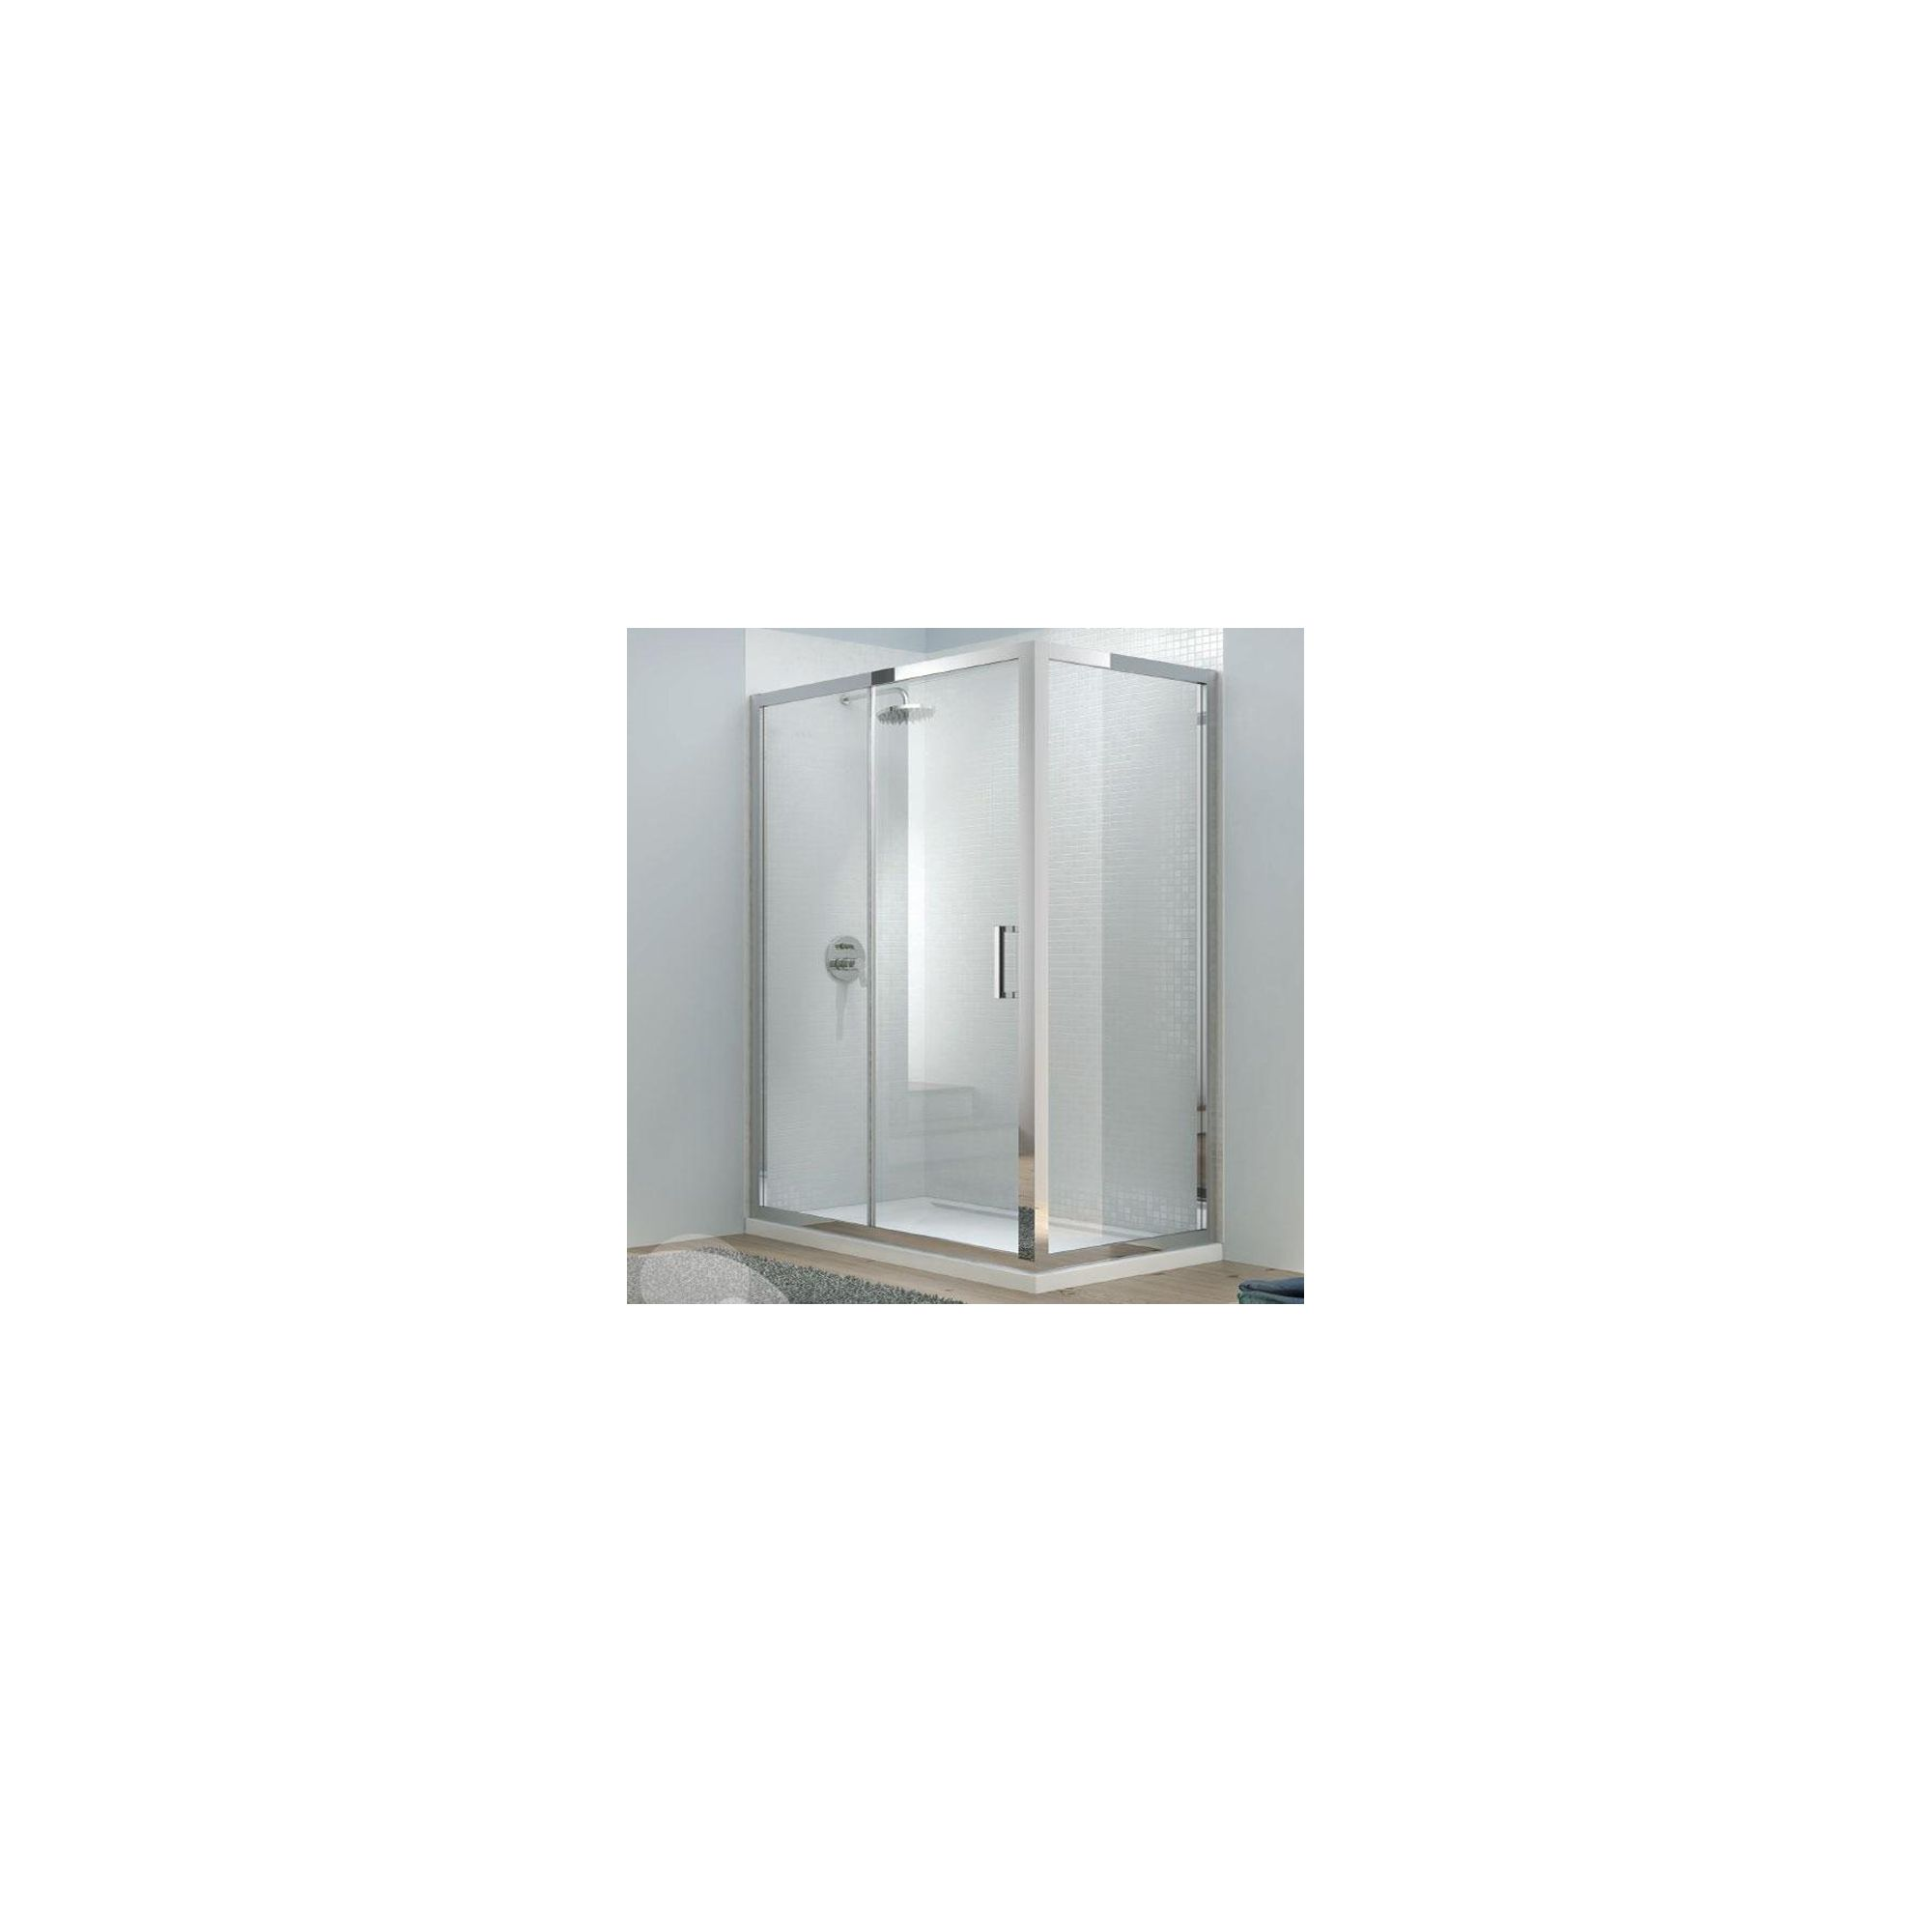 Merlyn Vivid Eight Sliding Shower Door, 1600mm Wide, 8mm Glass at Tesco Direct